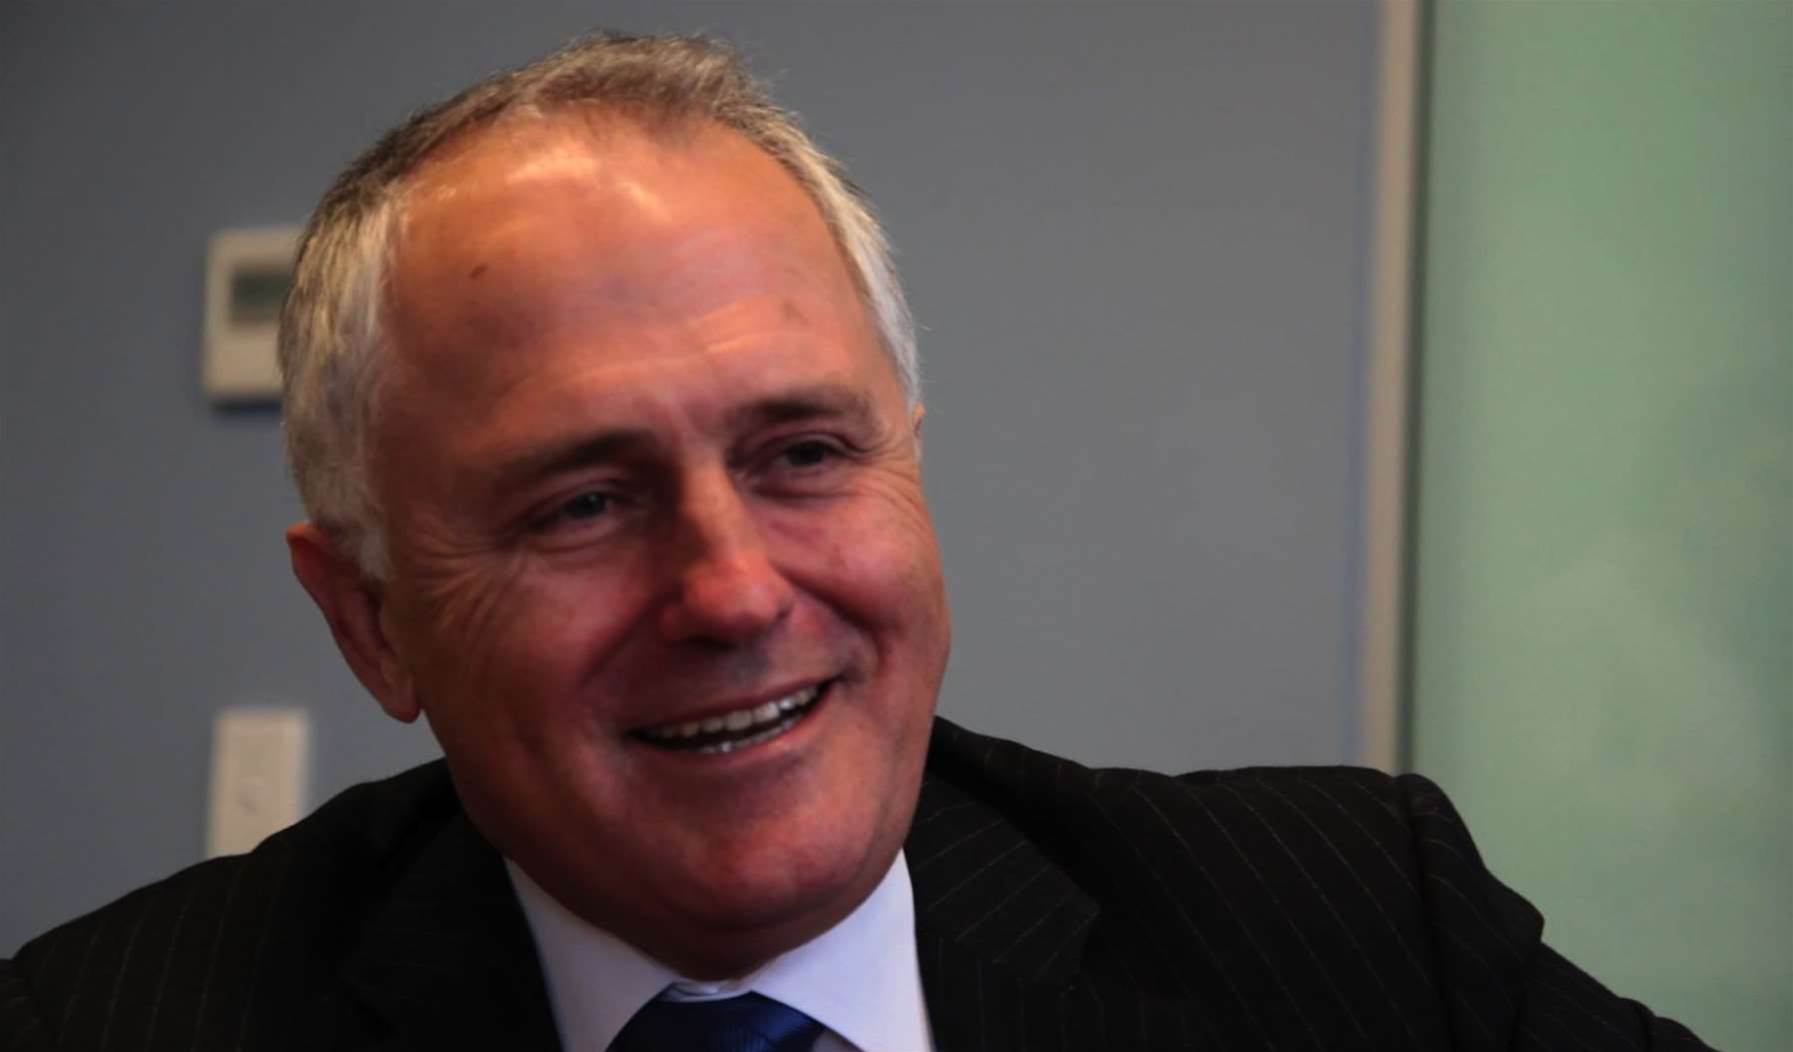 Turnbull may build more FTTP